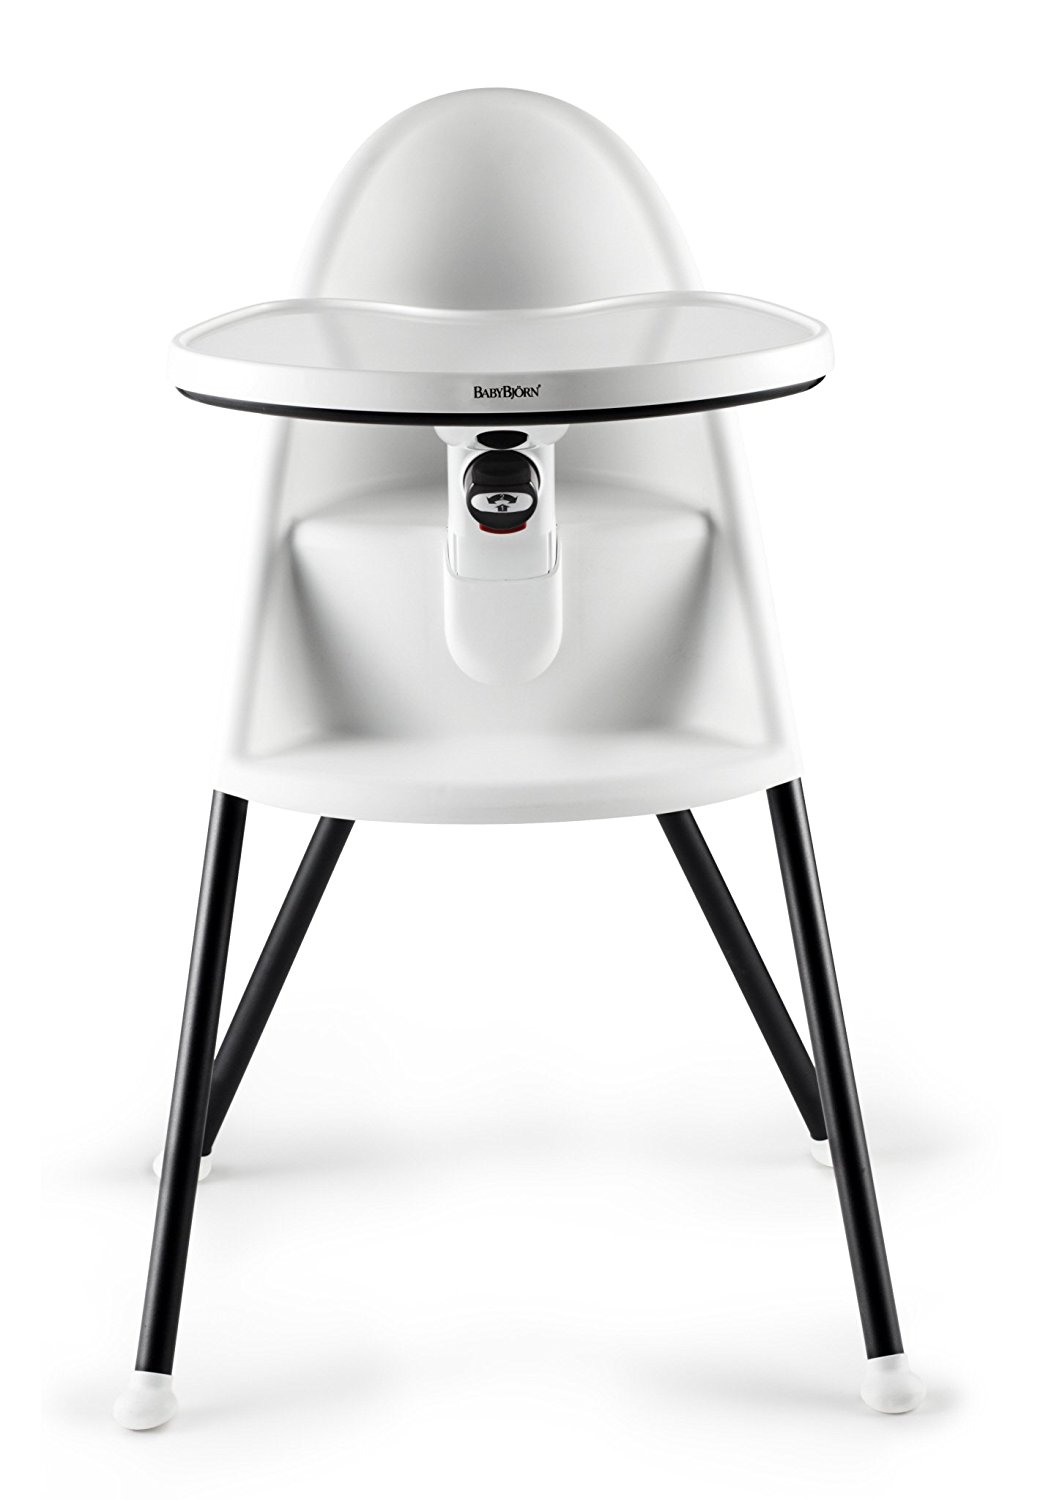 Attirant BABYBJORN High Chair. Best High Chairs For Small Spaces